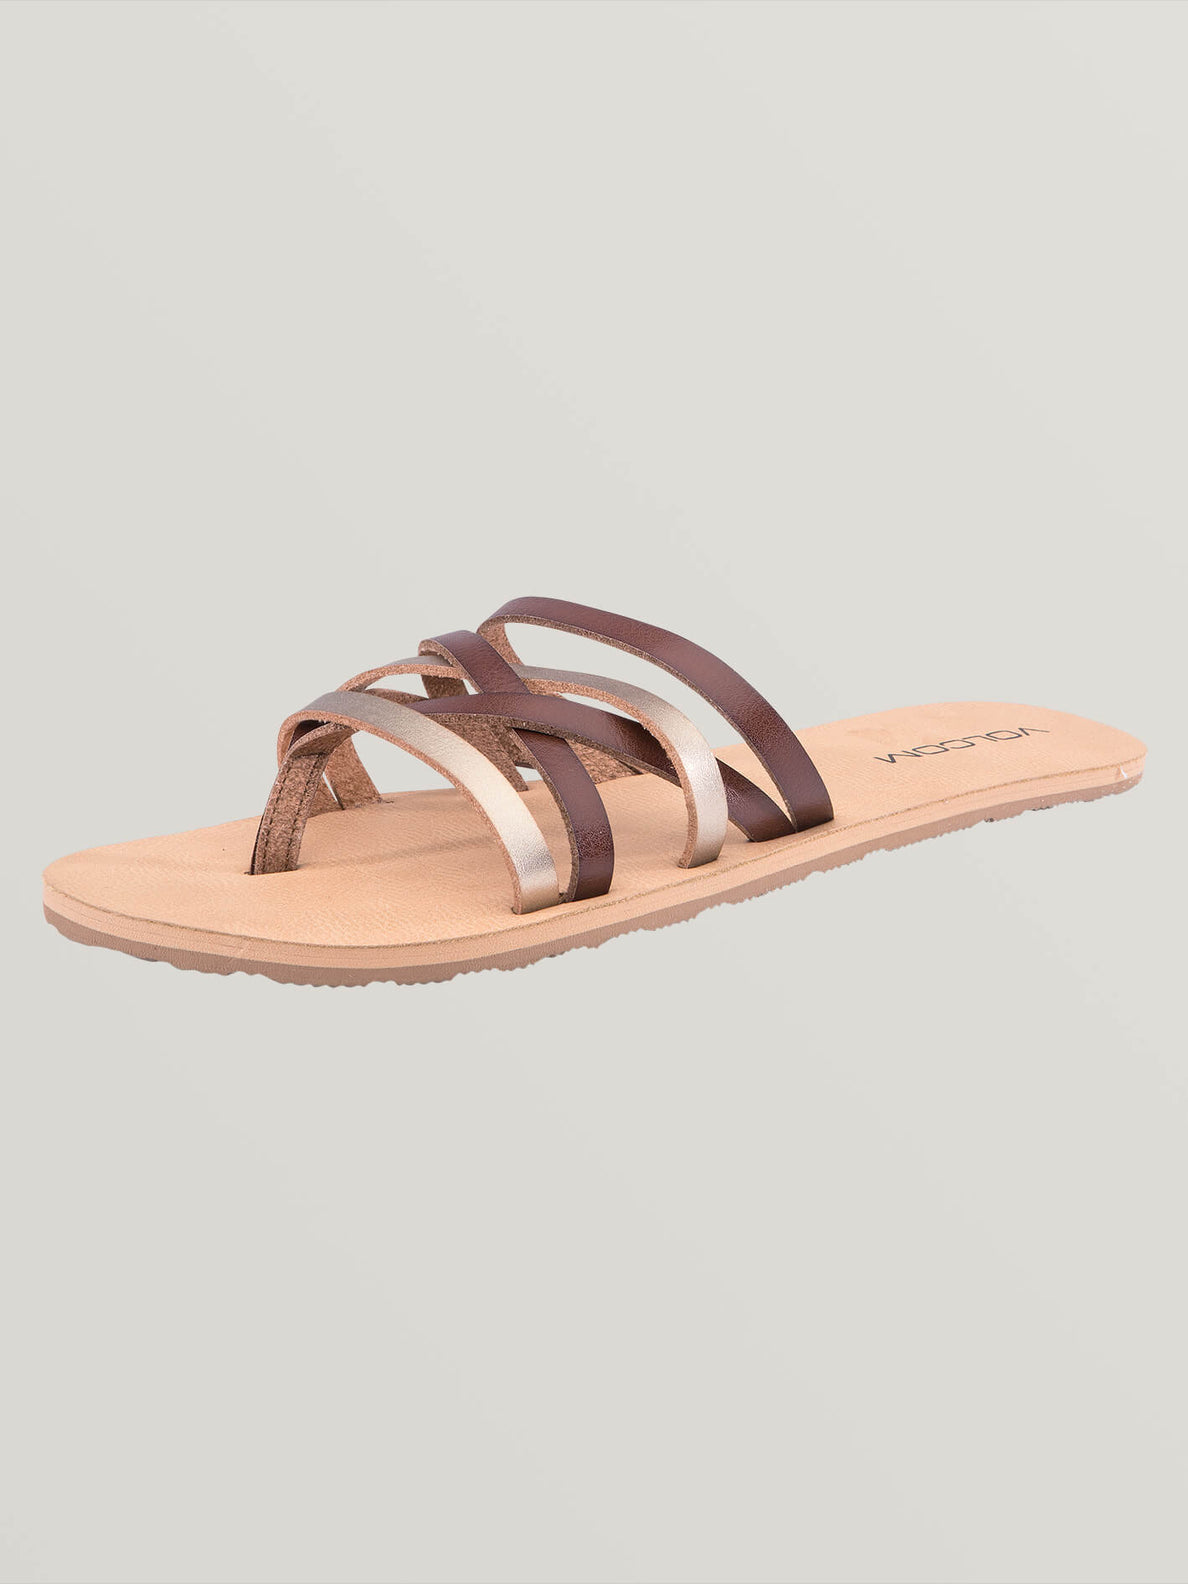 Legacy Sandals In Copper, Back View